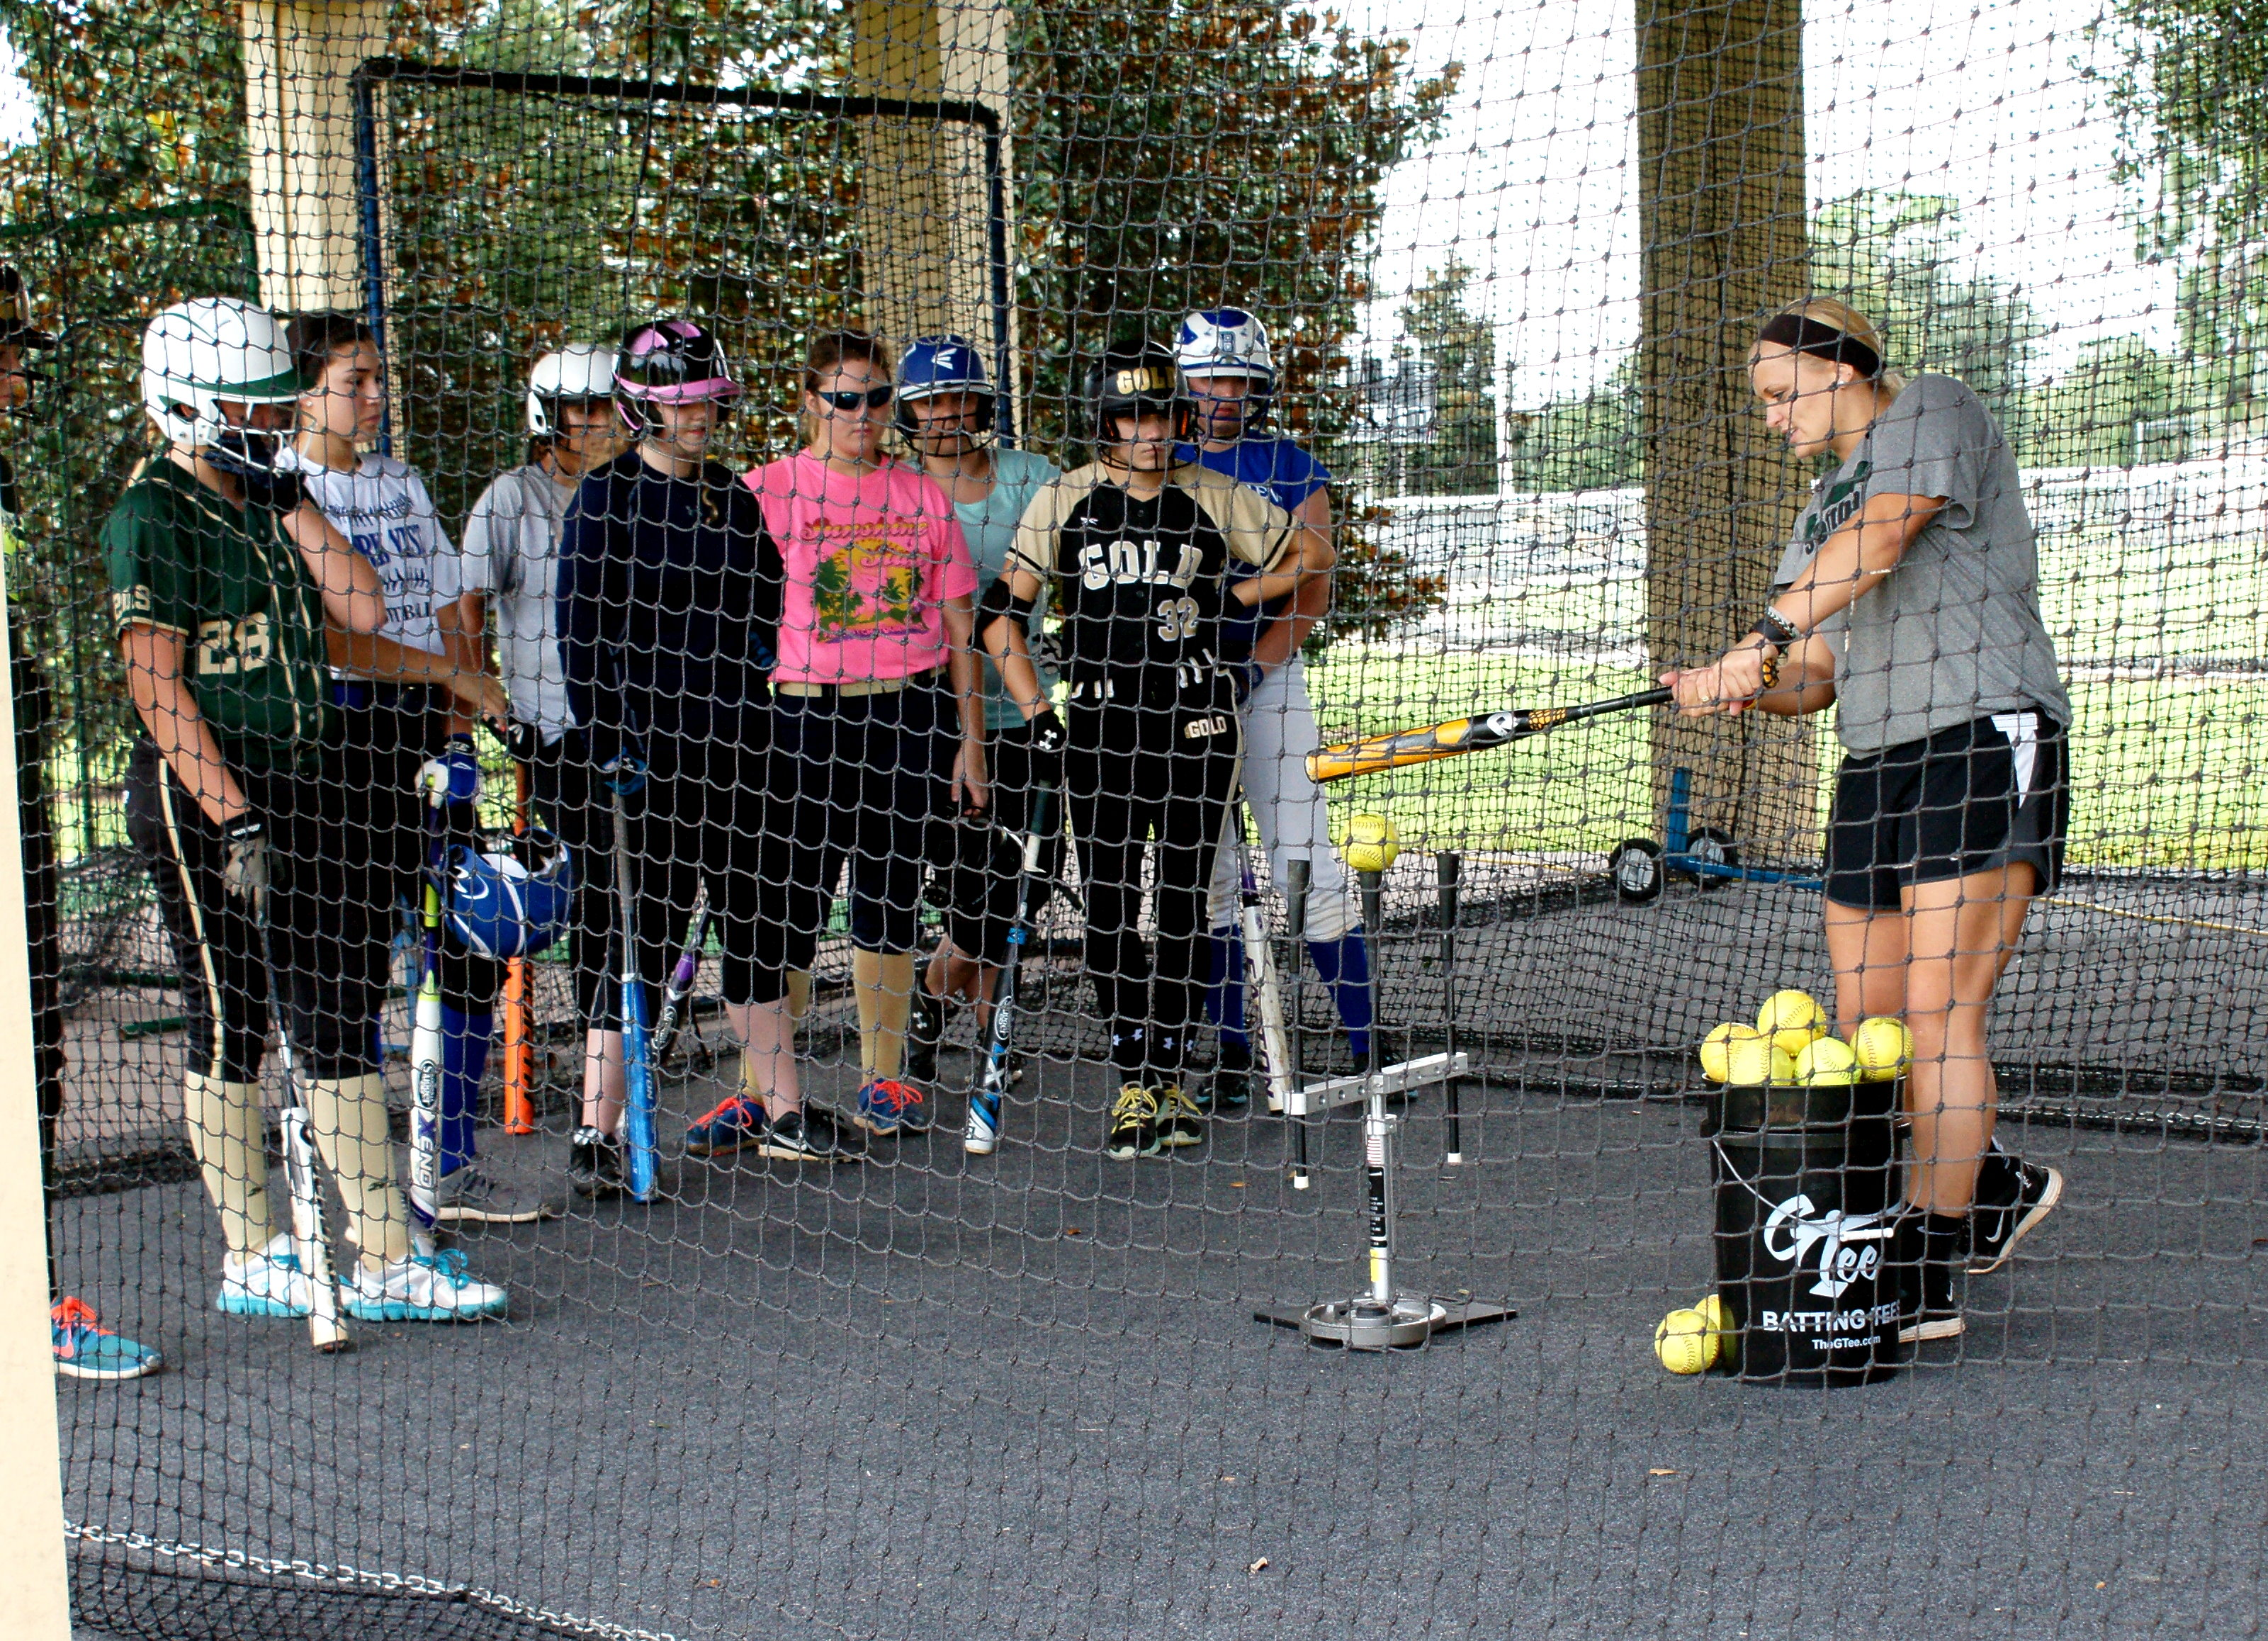 Former CF player Amy Szymanowski (L) shows softball players the correct way to hit